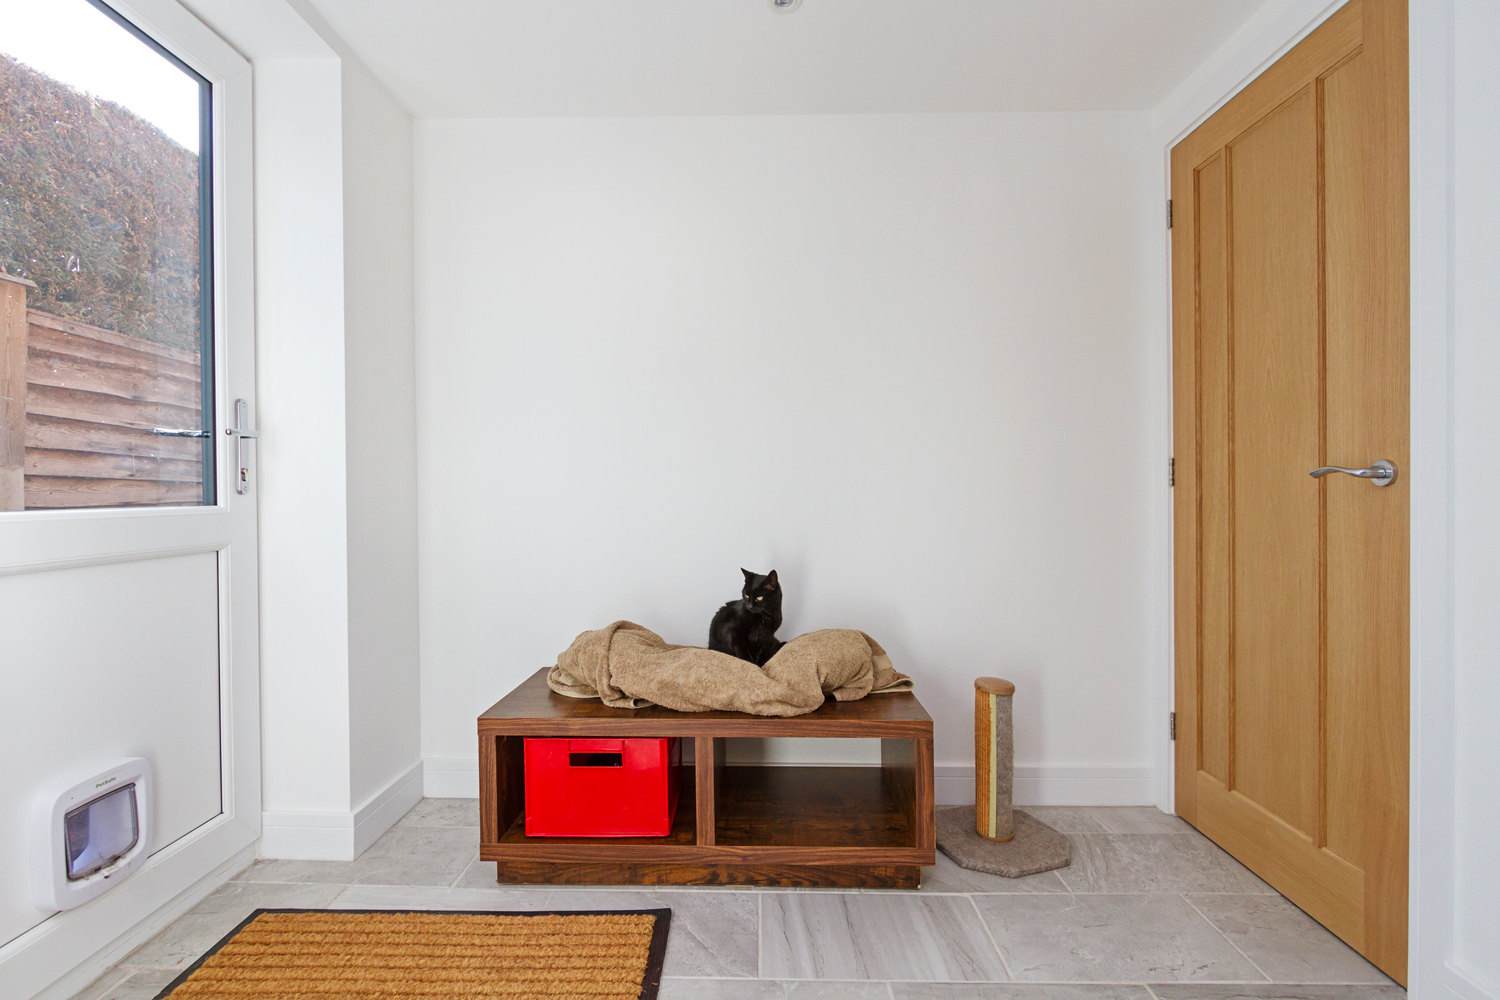 Croft Architecture Sustainable Self Build Cat Room